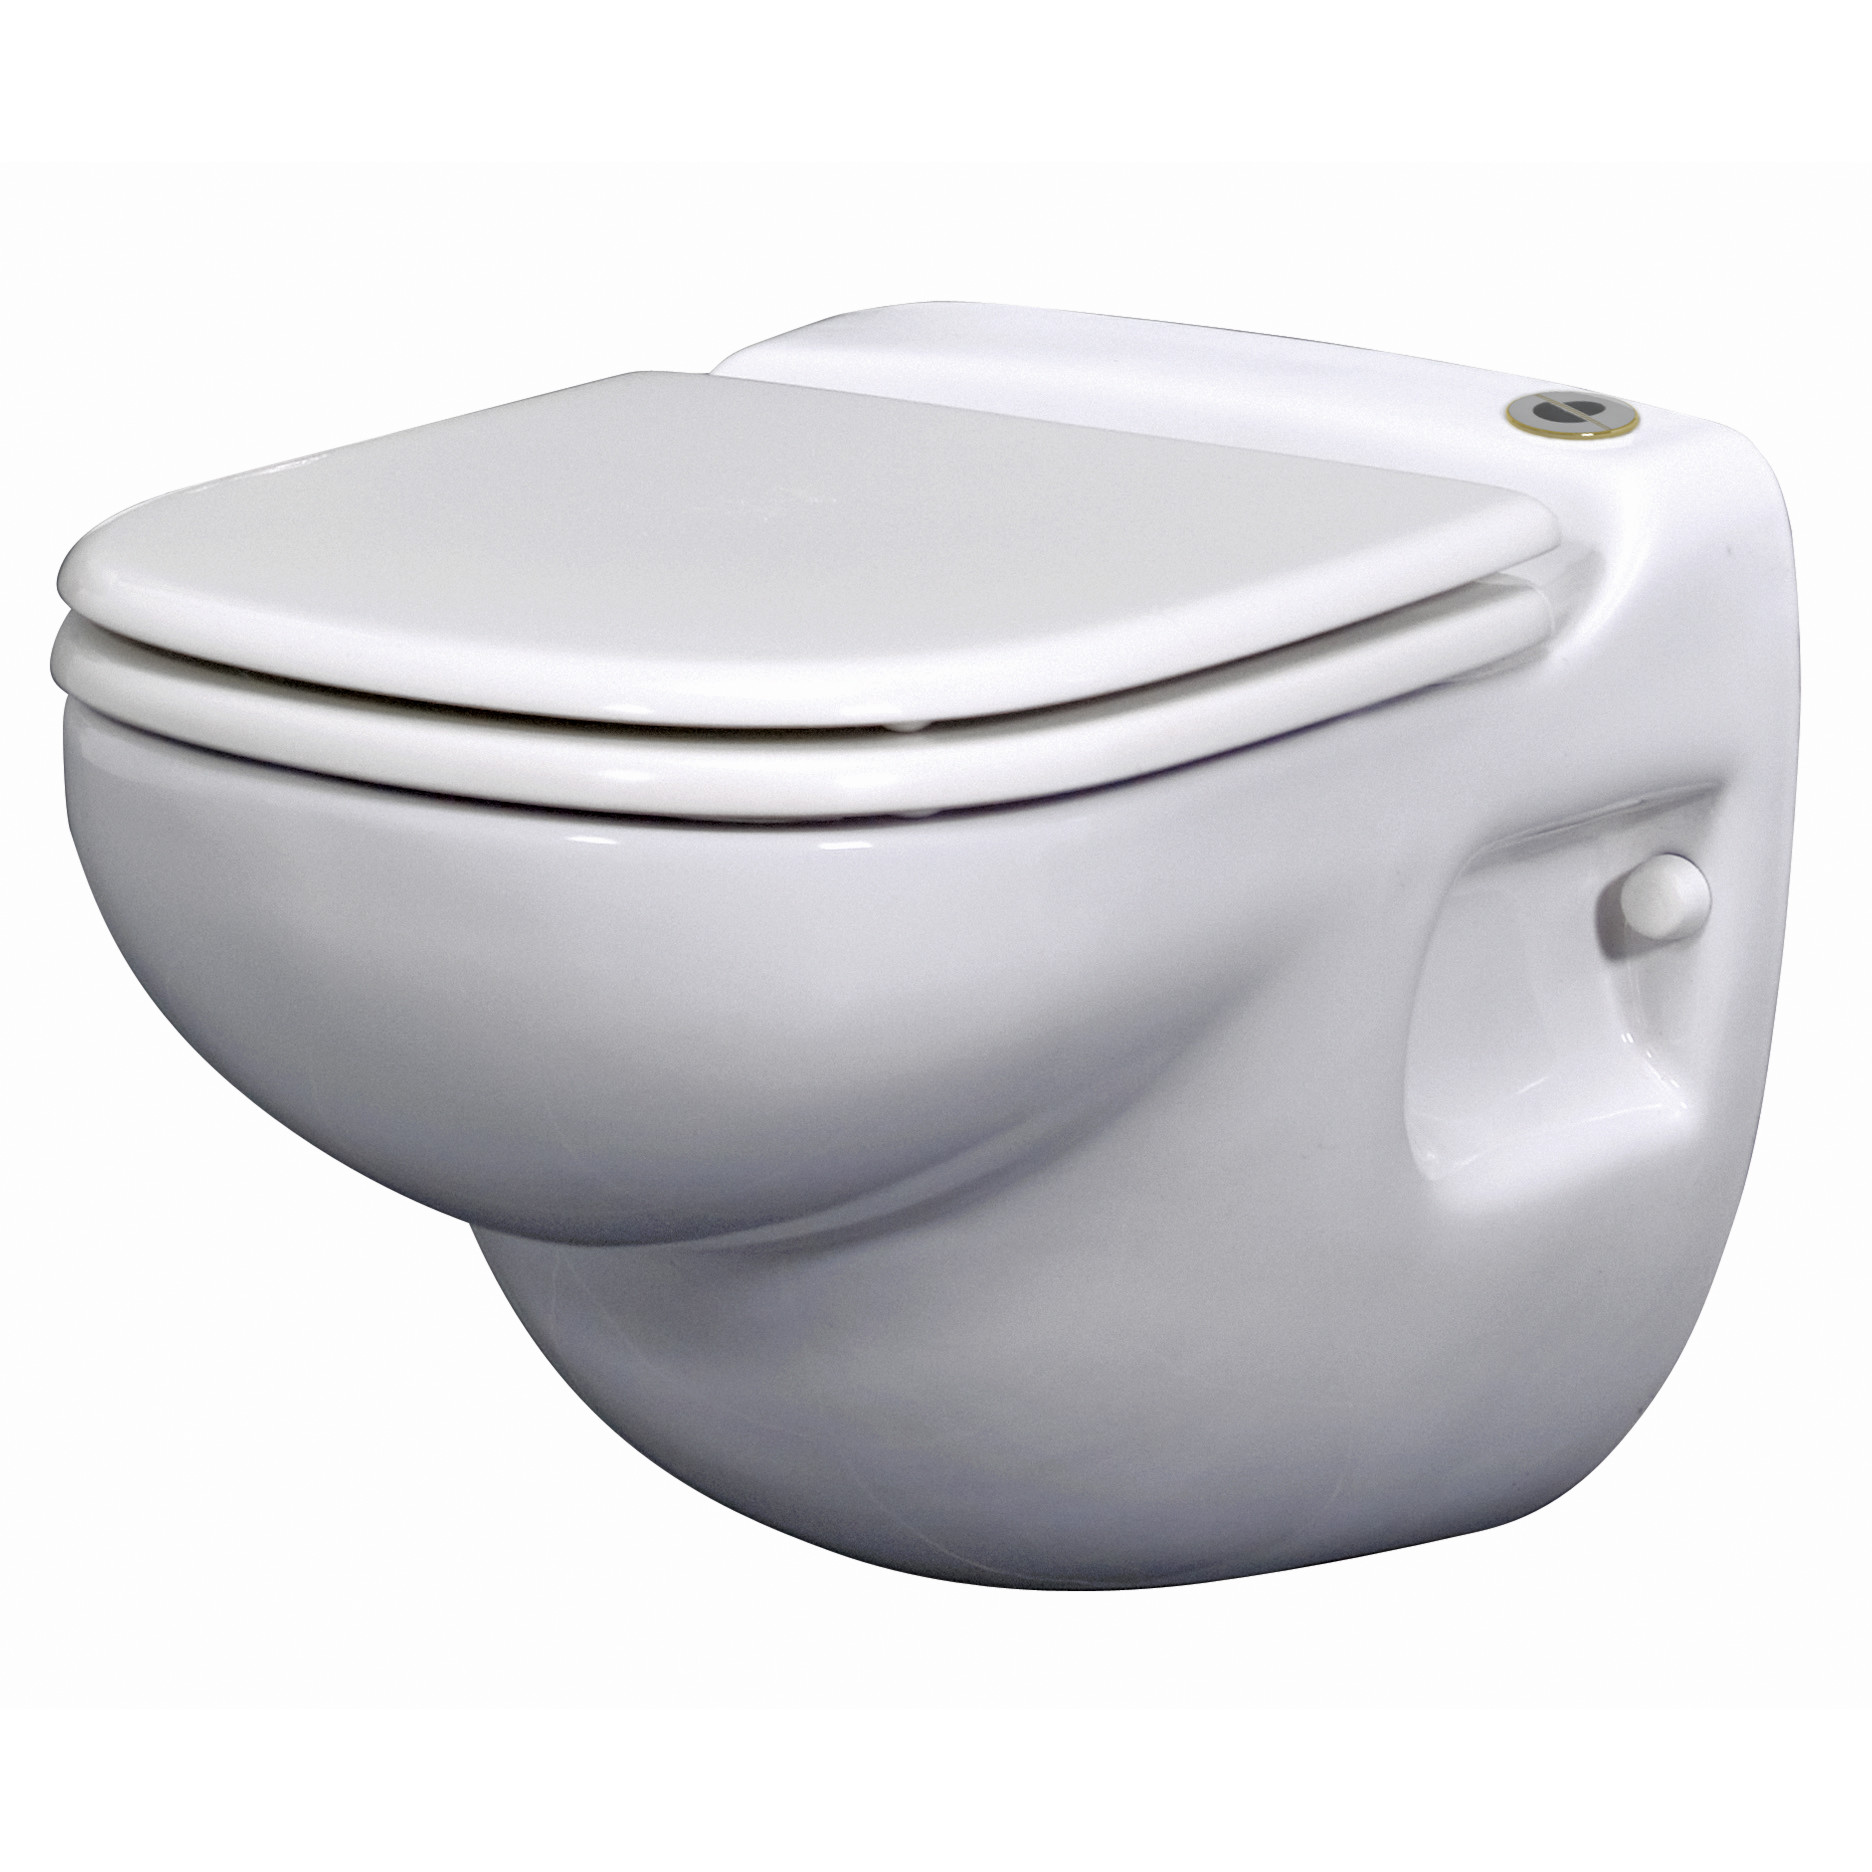 Sfa Website | Saniflo Compact Toilet Seat | Saniflo